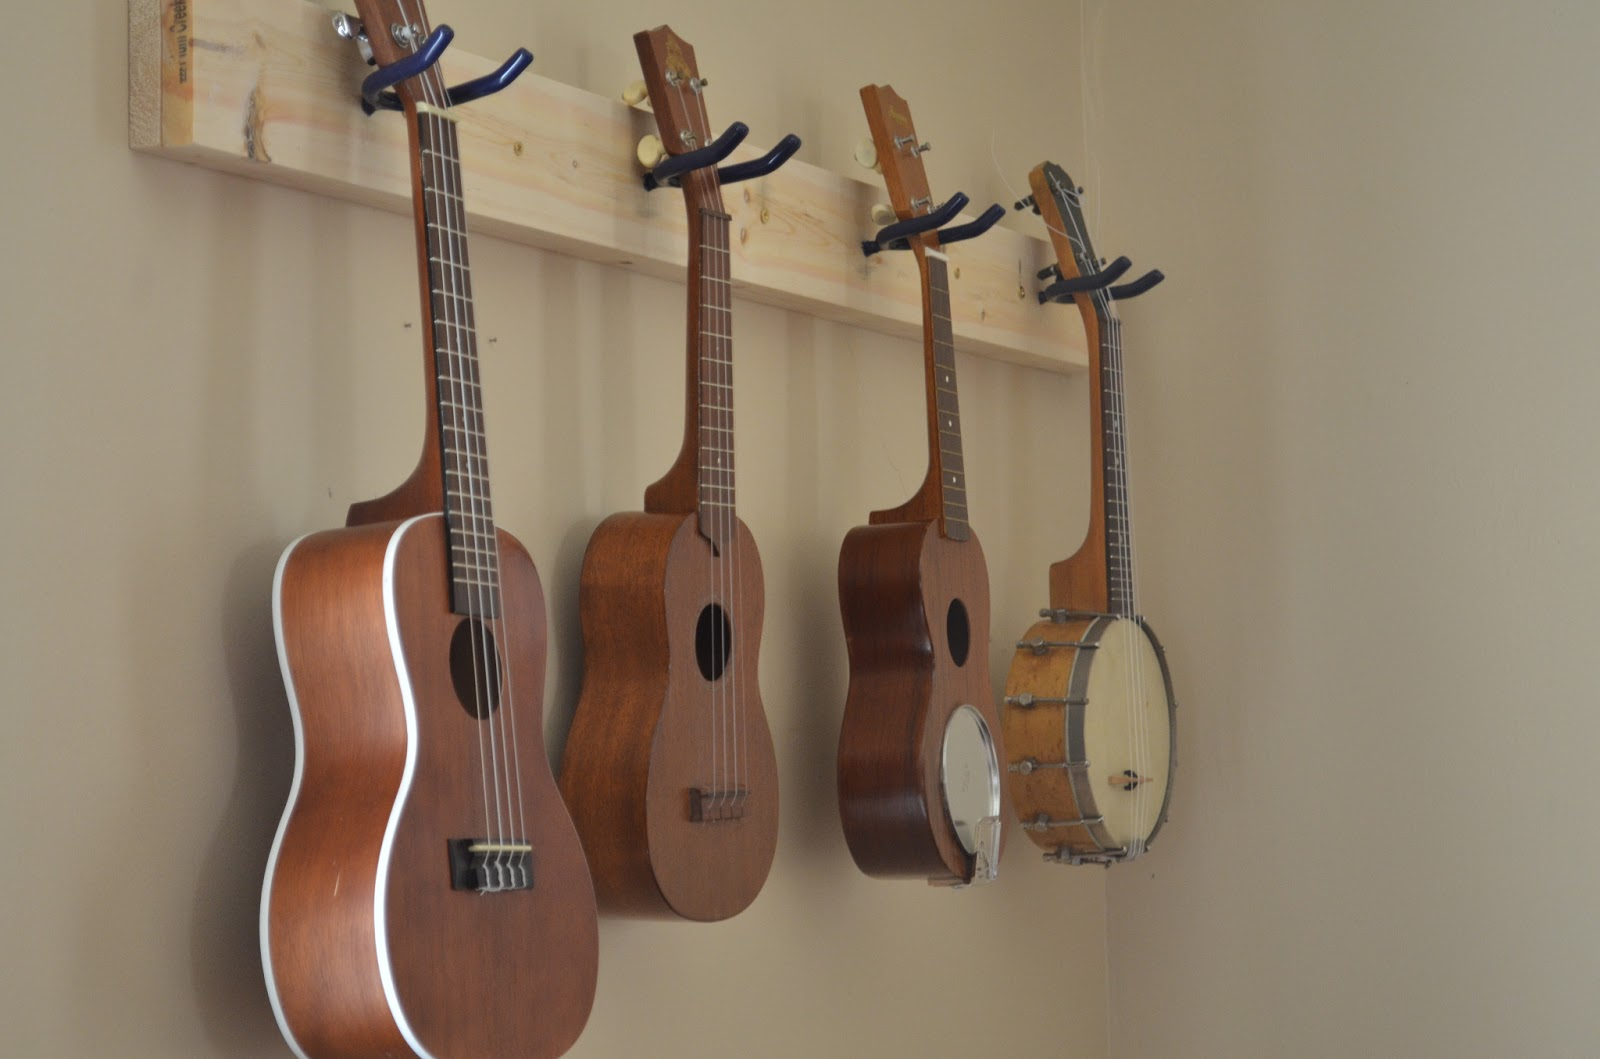 Ukeonomics how to make a ukulele wall hanger not much left to do but hang those ukes up and pat yourself on the back for a job well done solutioingenieria Image collections